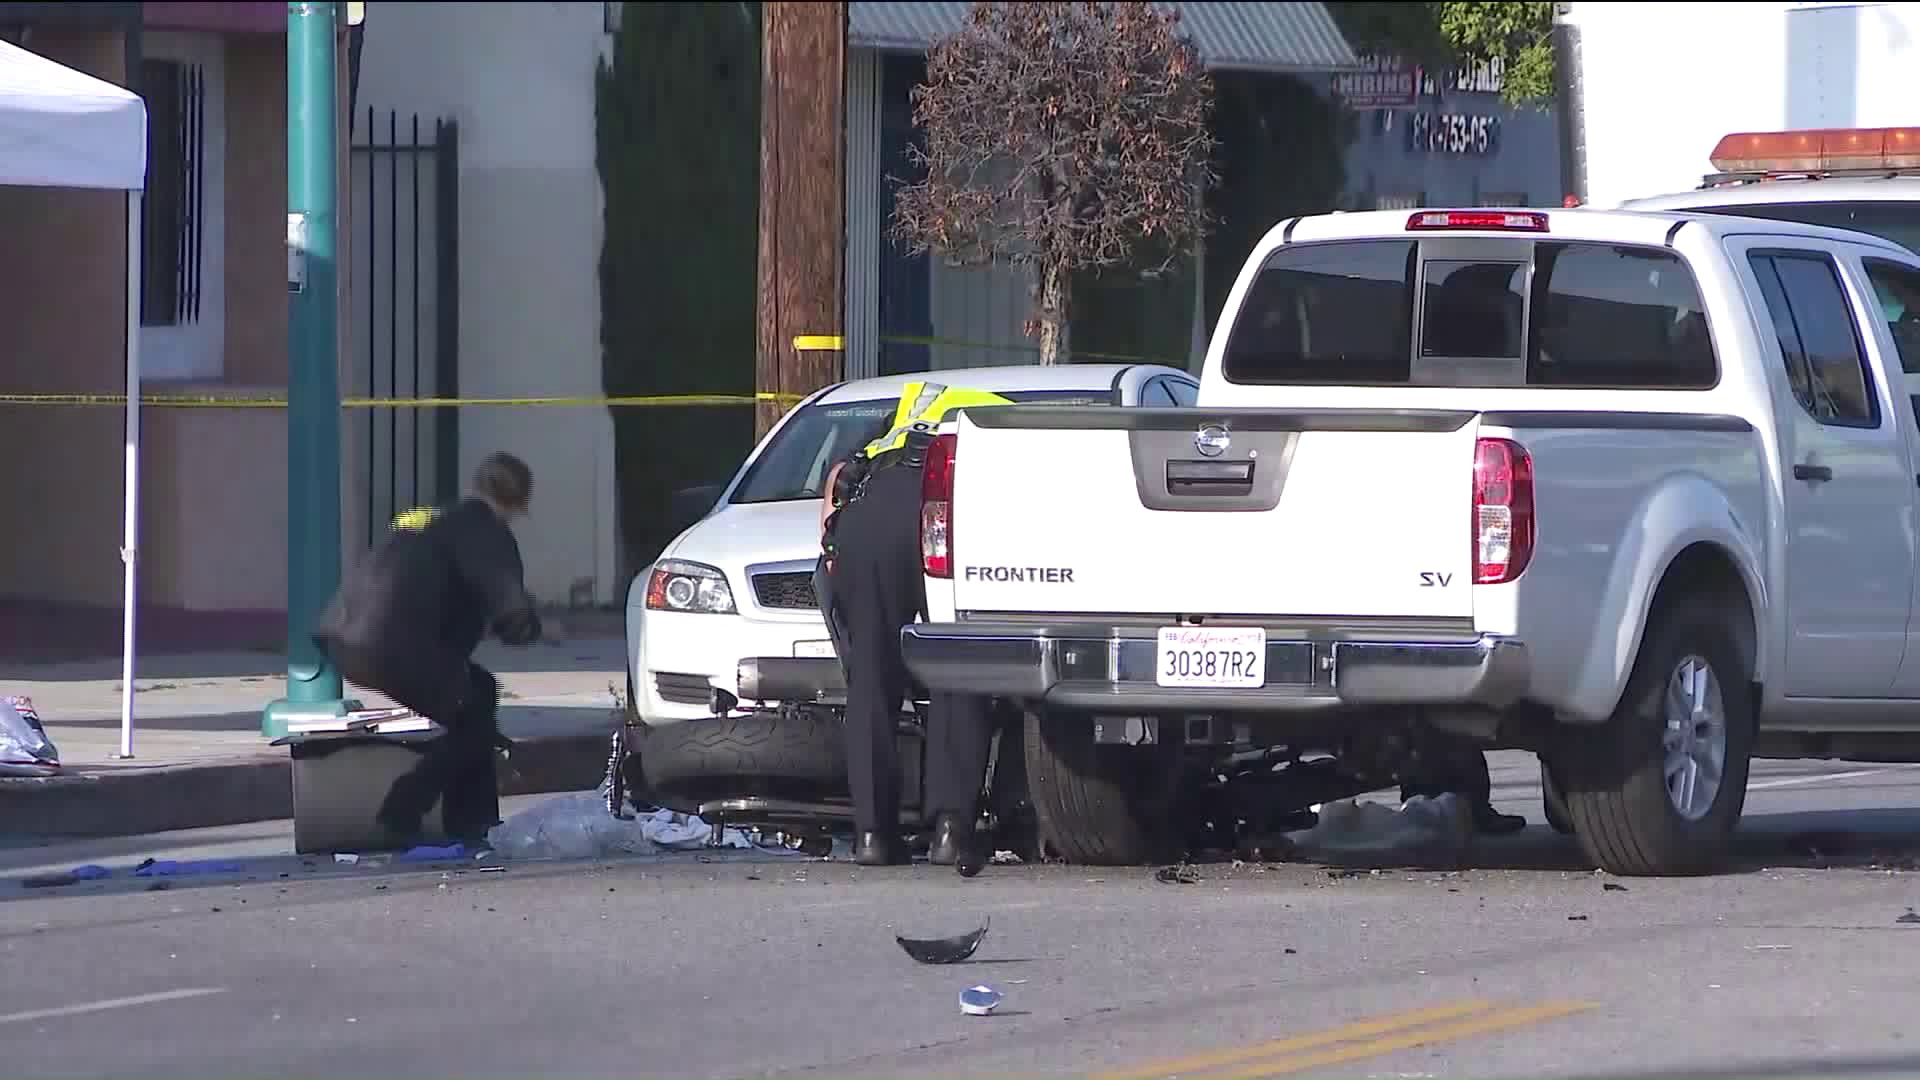 Officials investigate the scene of a fatal crash involving a motorcycle and a truck at Magnolia Boulevard and Cartwright Avenue in North Hollywood on June 7, 2019. (Credit: KTLA)